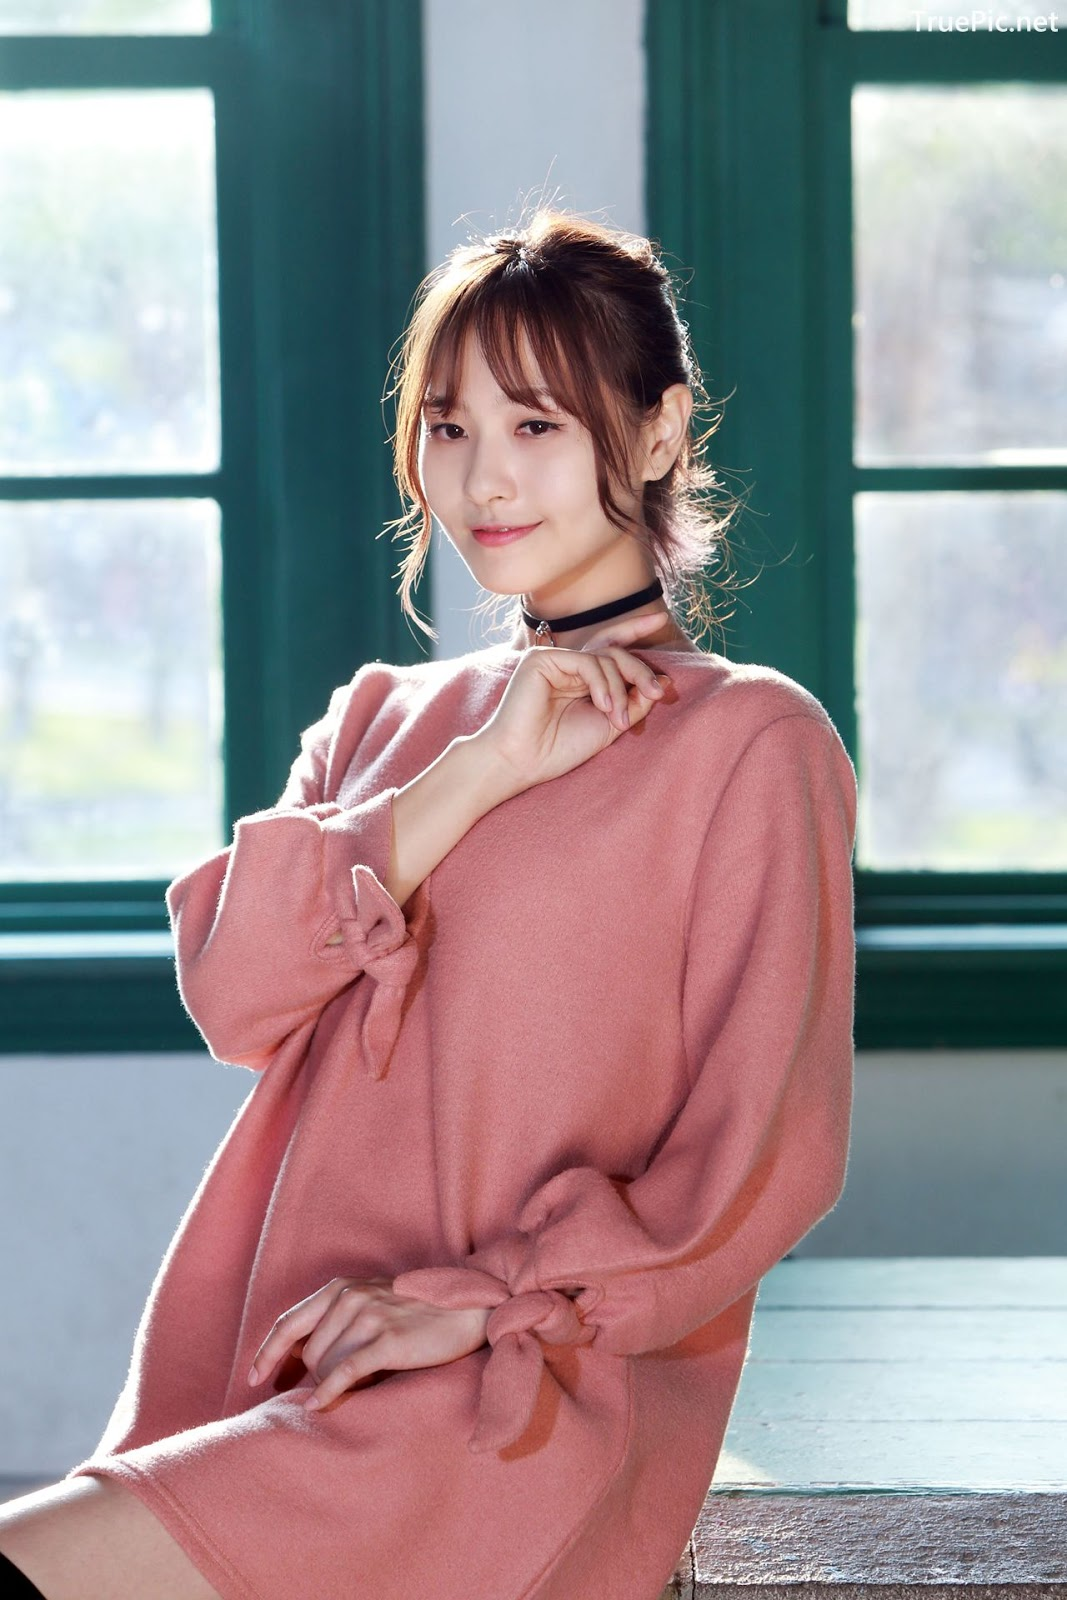 Image-Taiwanese-Model-郭思敏-Pure-And-Gorgeous-Girl-In-Pink-Sweater-Dress-TruePic.net- Picture-10